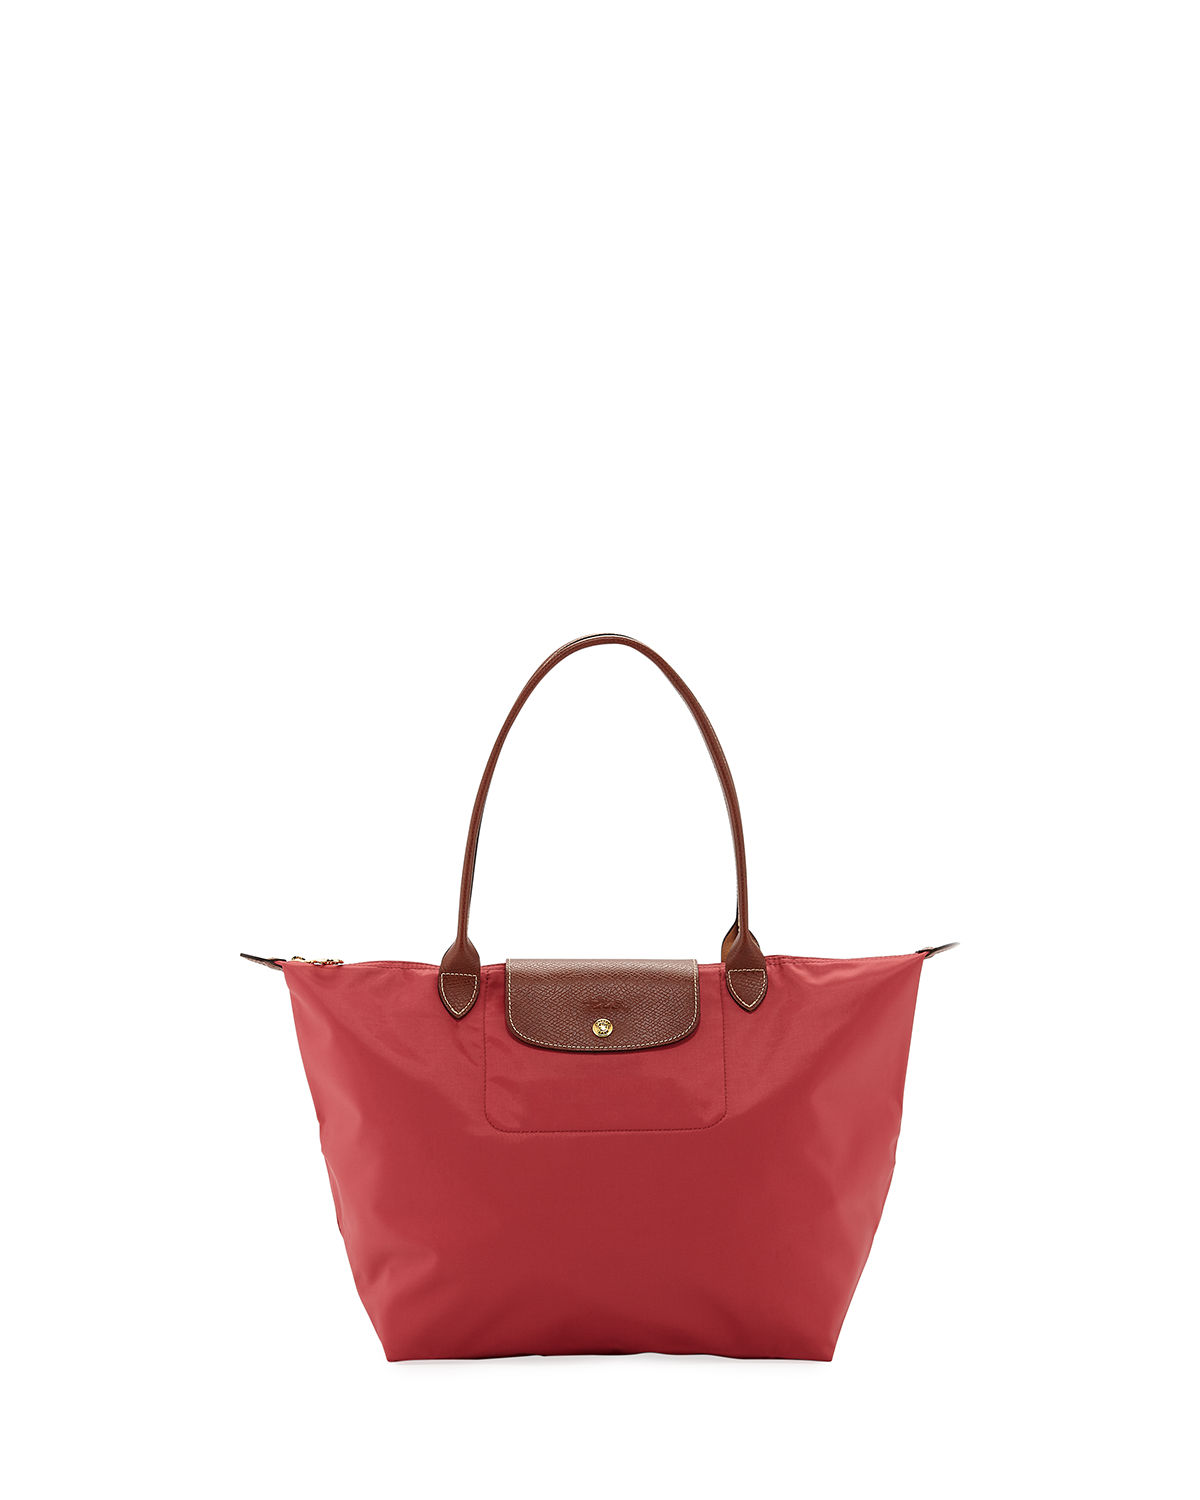 13c750a46be4 Longchamp Le Pliage Medium Shoulder Tote Bag